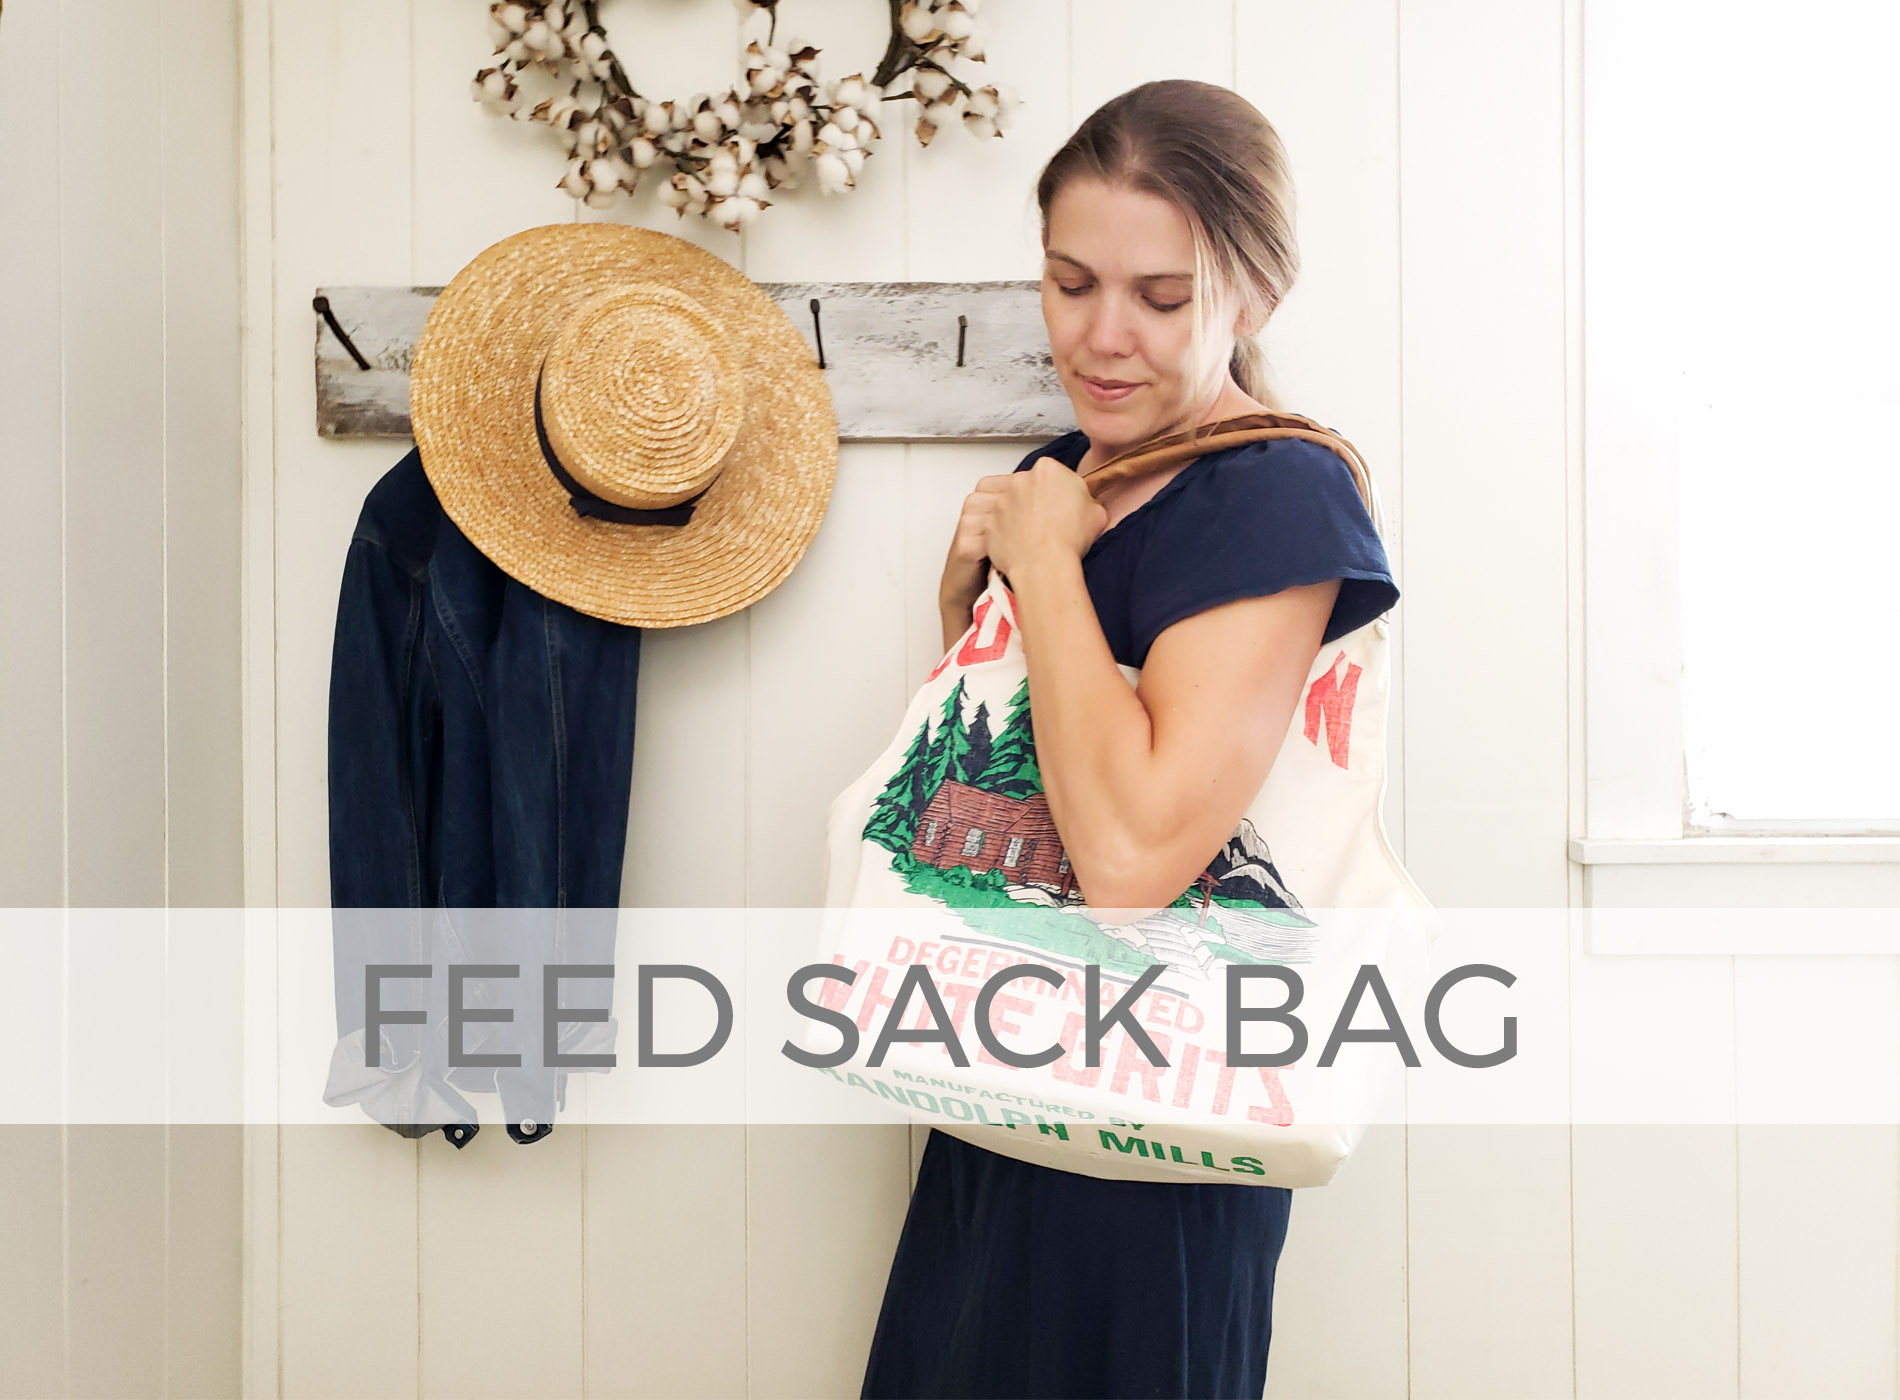 Farmhouse Style Upcycled Feed Sack Bag by Larissa of Prodigal Pieces | prodigalpieces.com #prodigalpieces